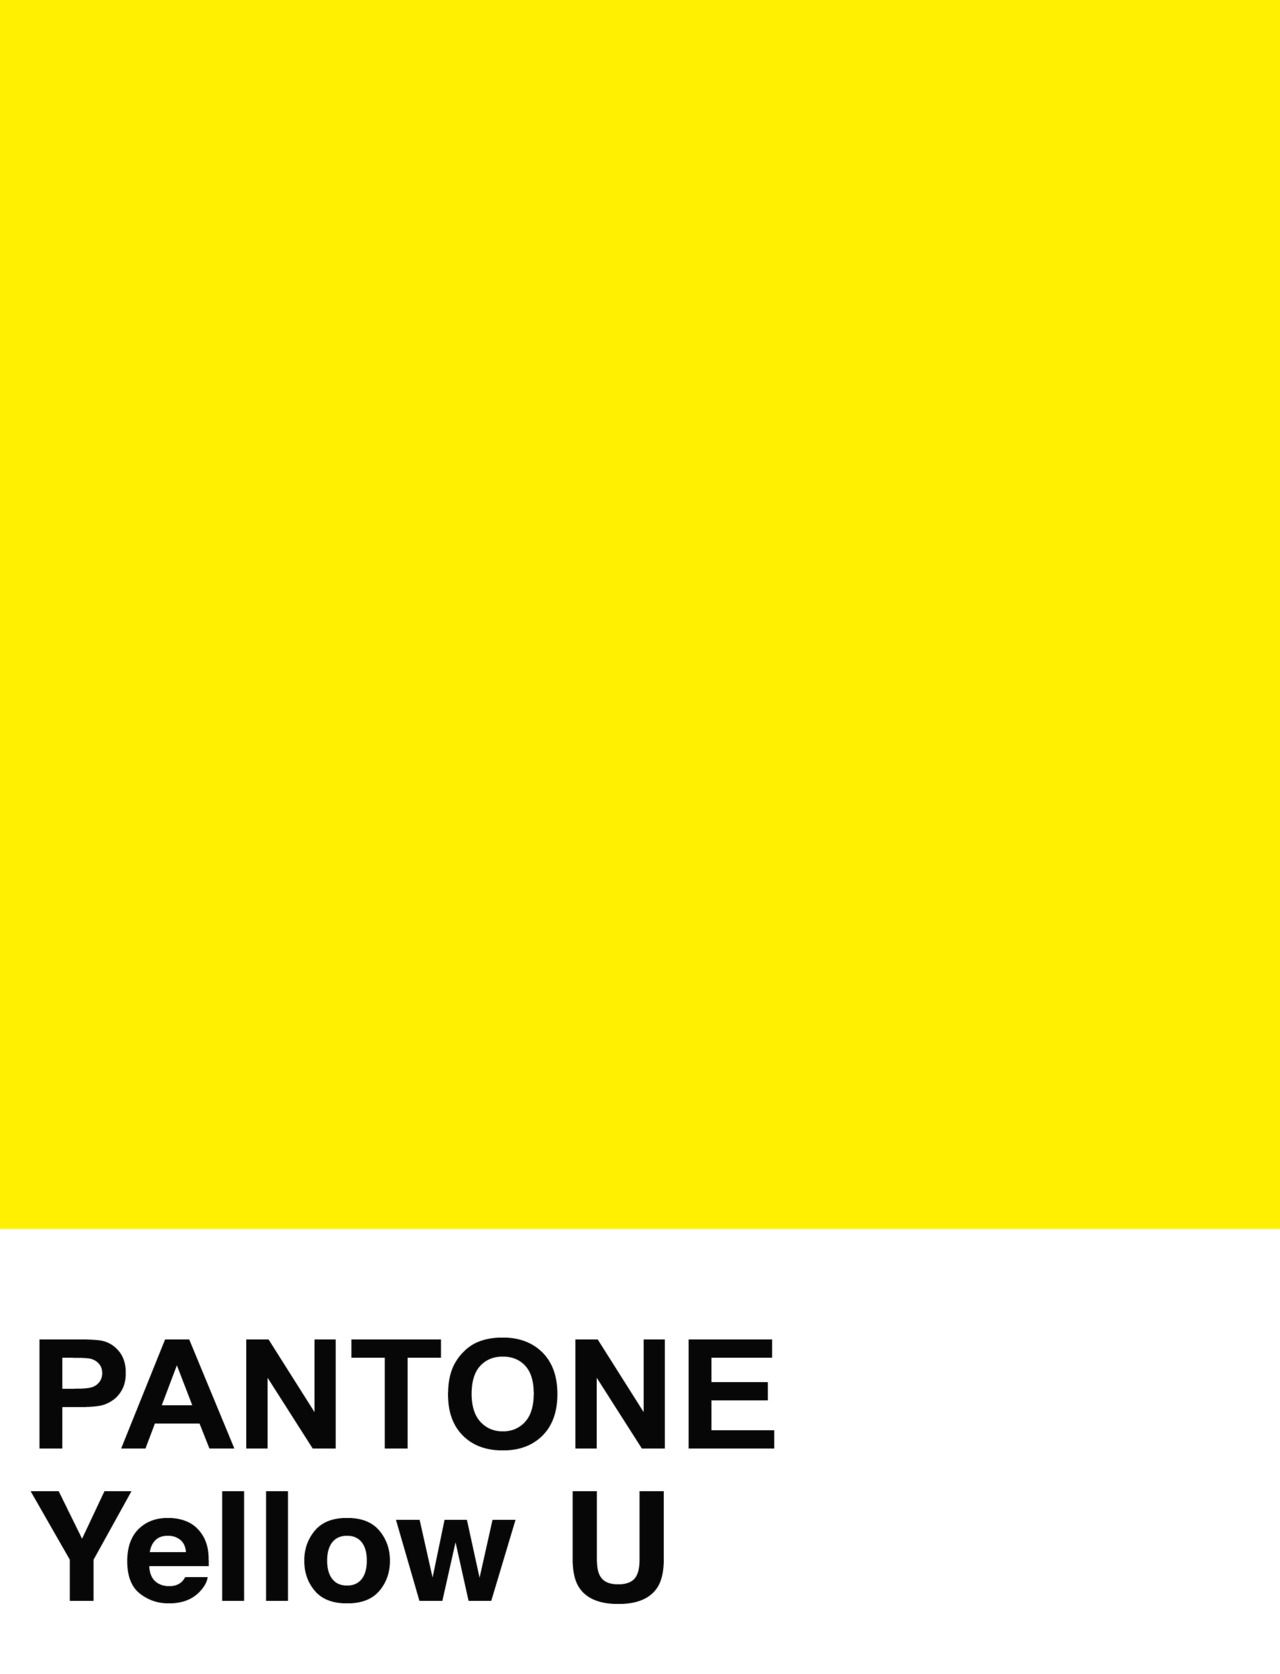 Yellow Pantone Pantone Color Pantone Solid Uncoated Photo